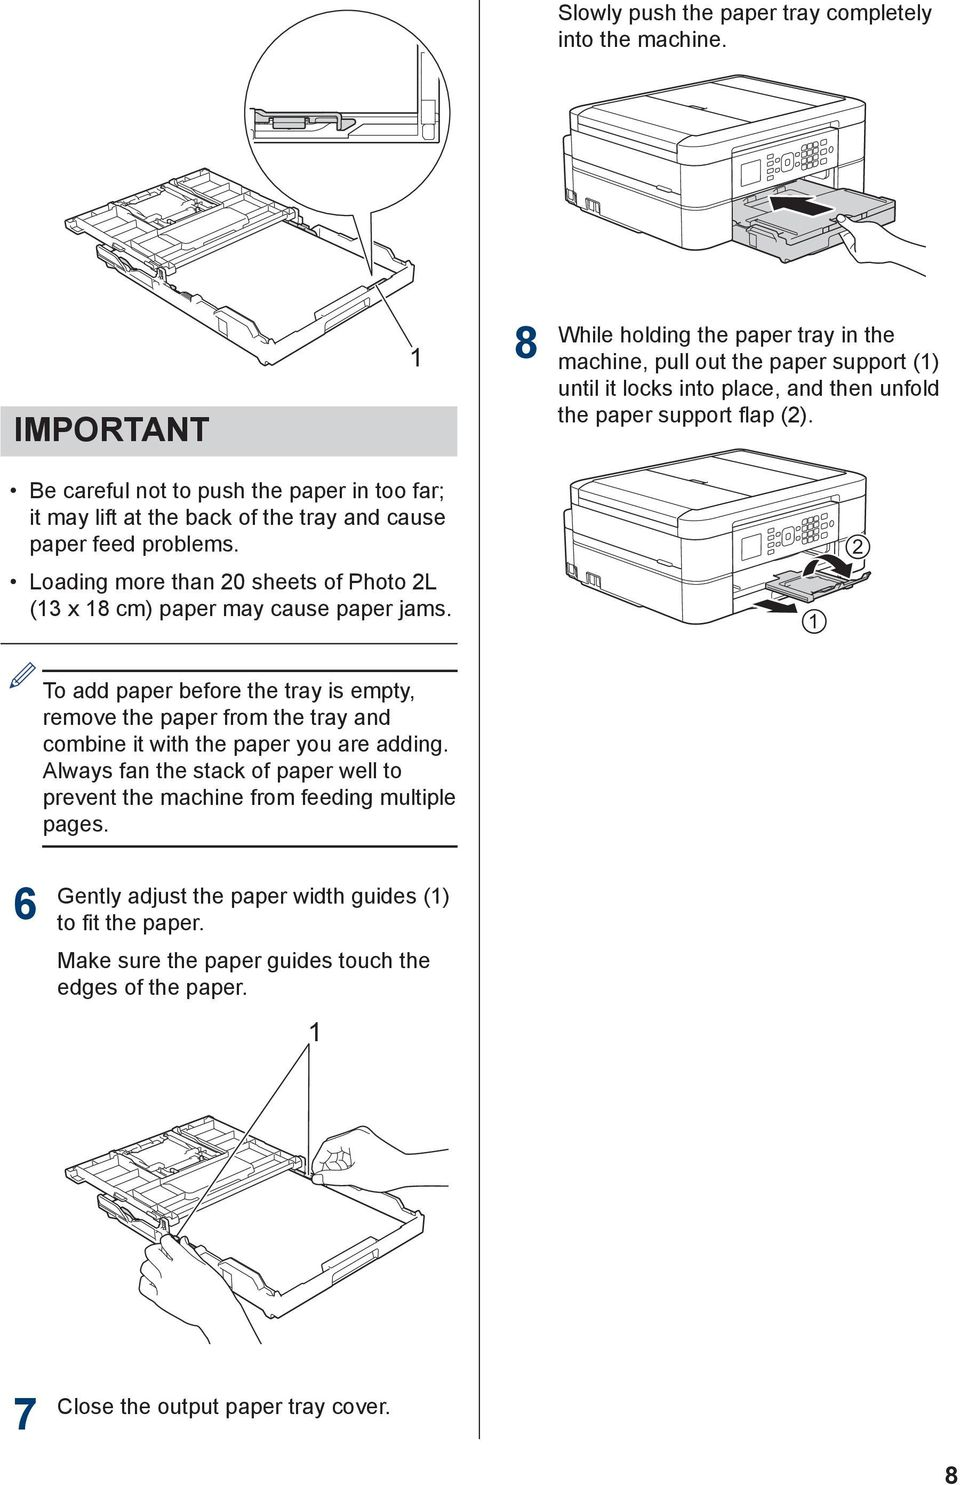 Be careful not to push the paper in too far; it may lift at the back of the tray and cause paper feed problems. Loading more than 0 sheets of Photo L (3 x 8 cm) paper may cause paper jams.